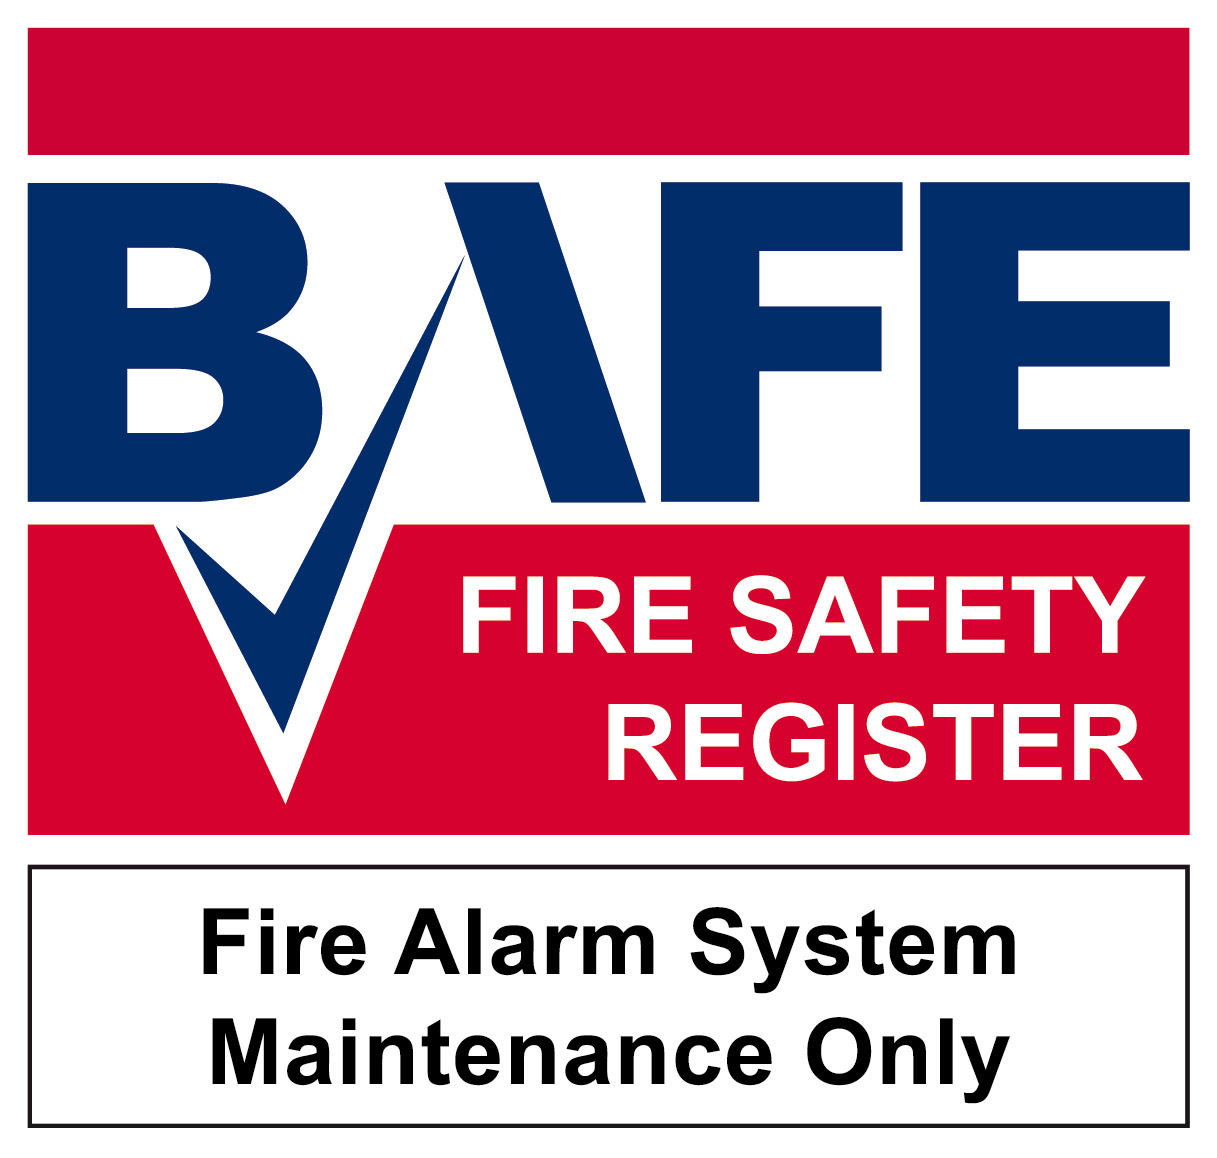 BAFE fire alarm maintainer